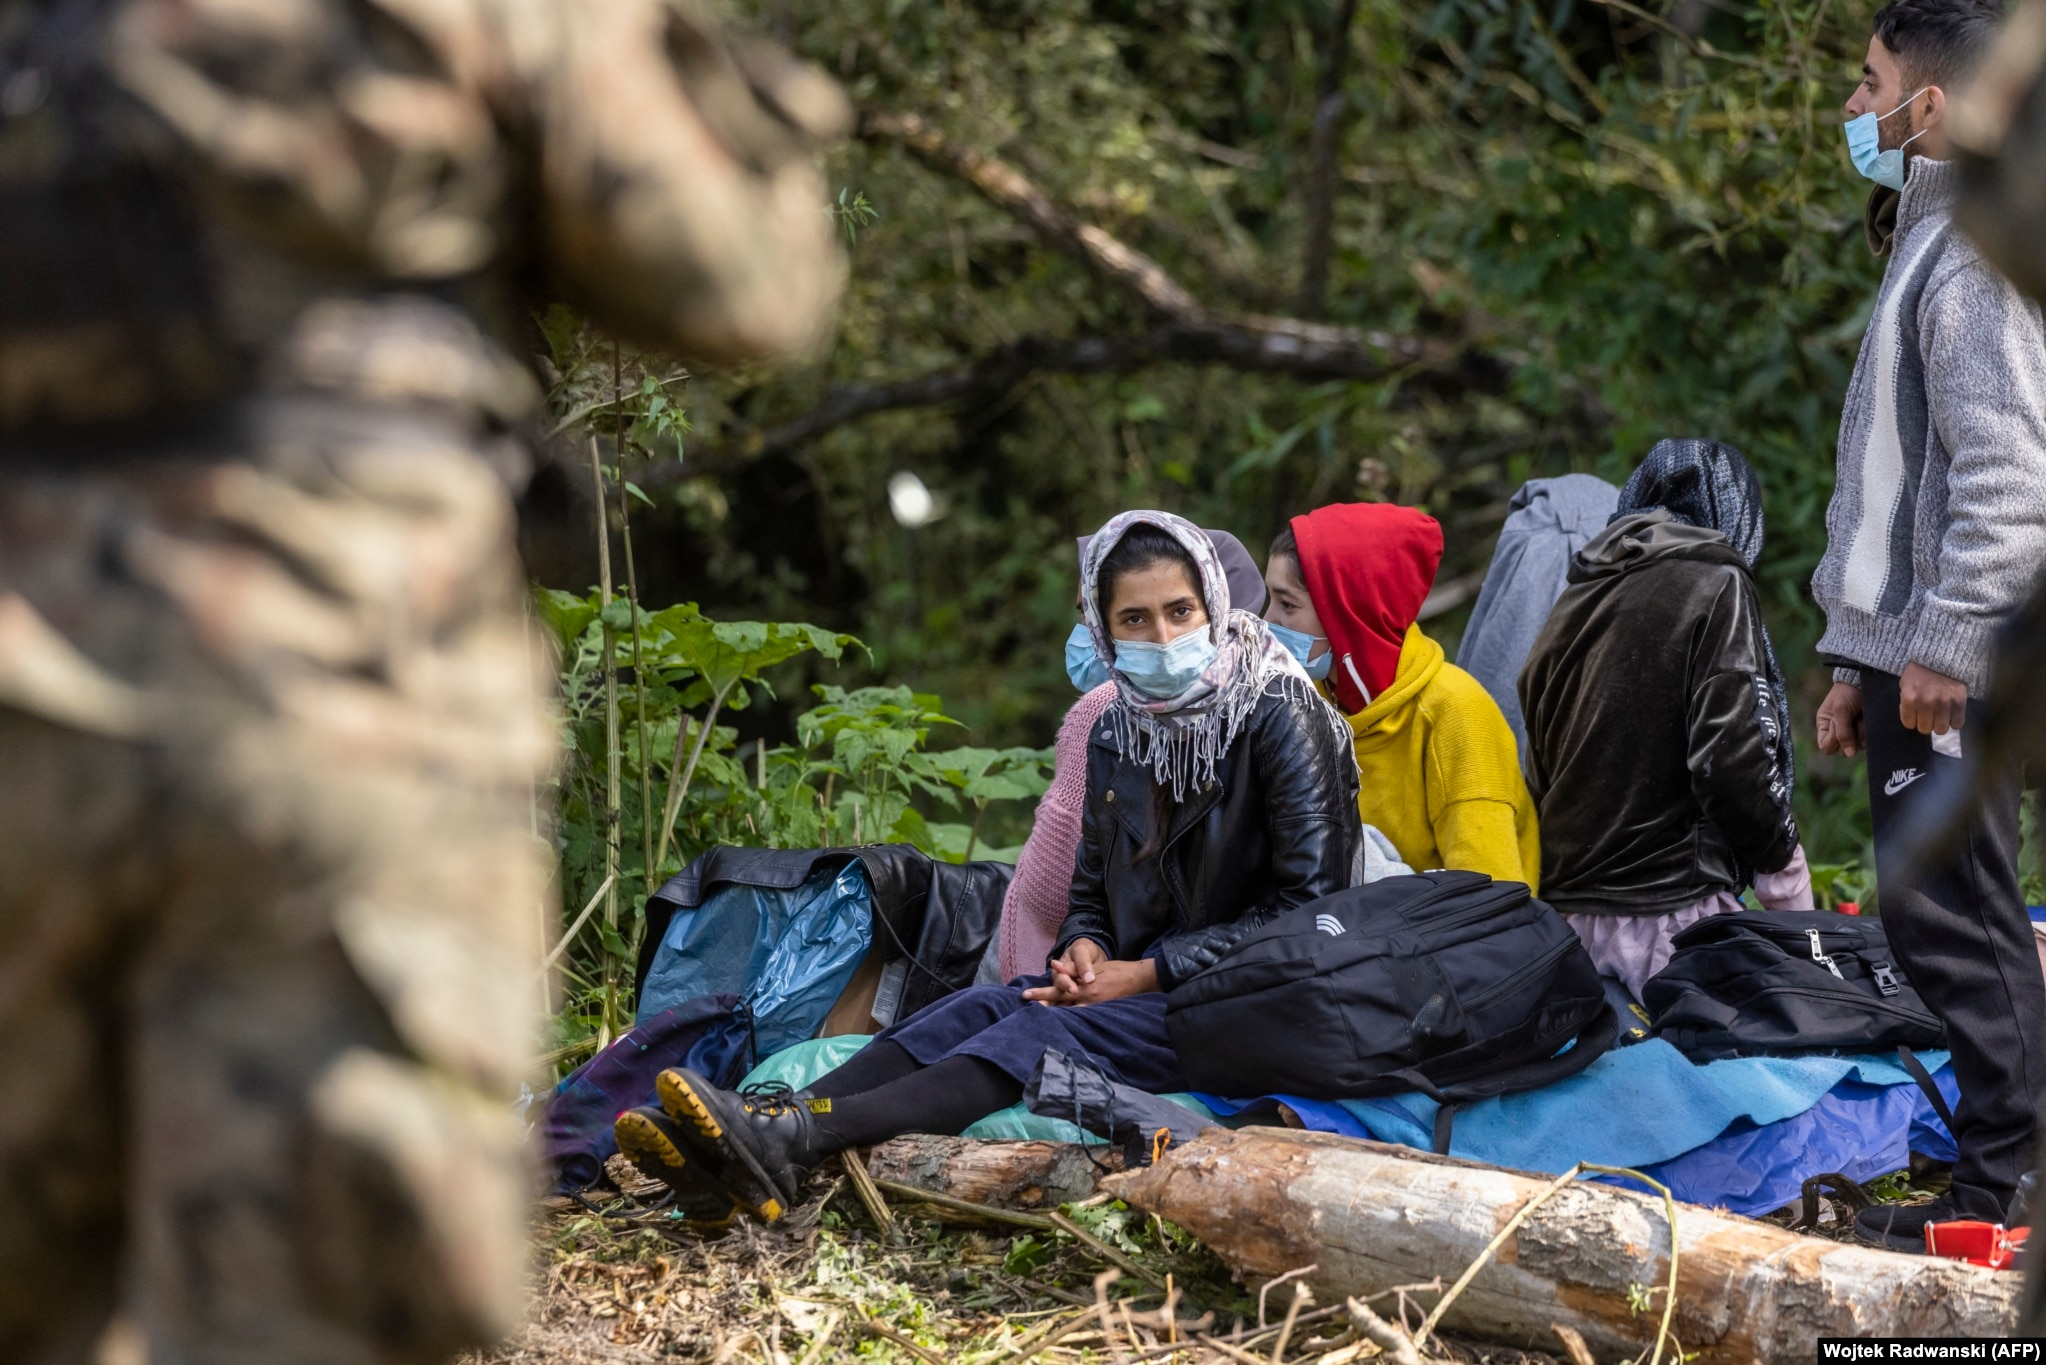 """The United Nations refugee agency, the UNHCR, has urged Poland to take in the stranded migrants, saying, """"While we acknowledge the challenges posed by recent arrivals to Poland, we call on the Polish authorities to provide access to territory, immediate medical assistance, legal advice, and psychosocial support to these people."""""""